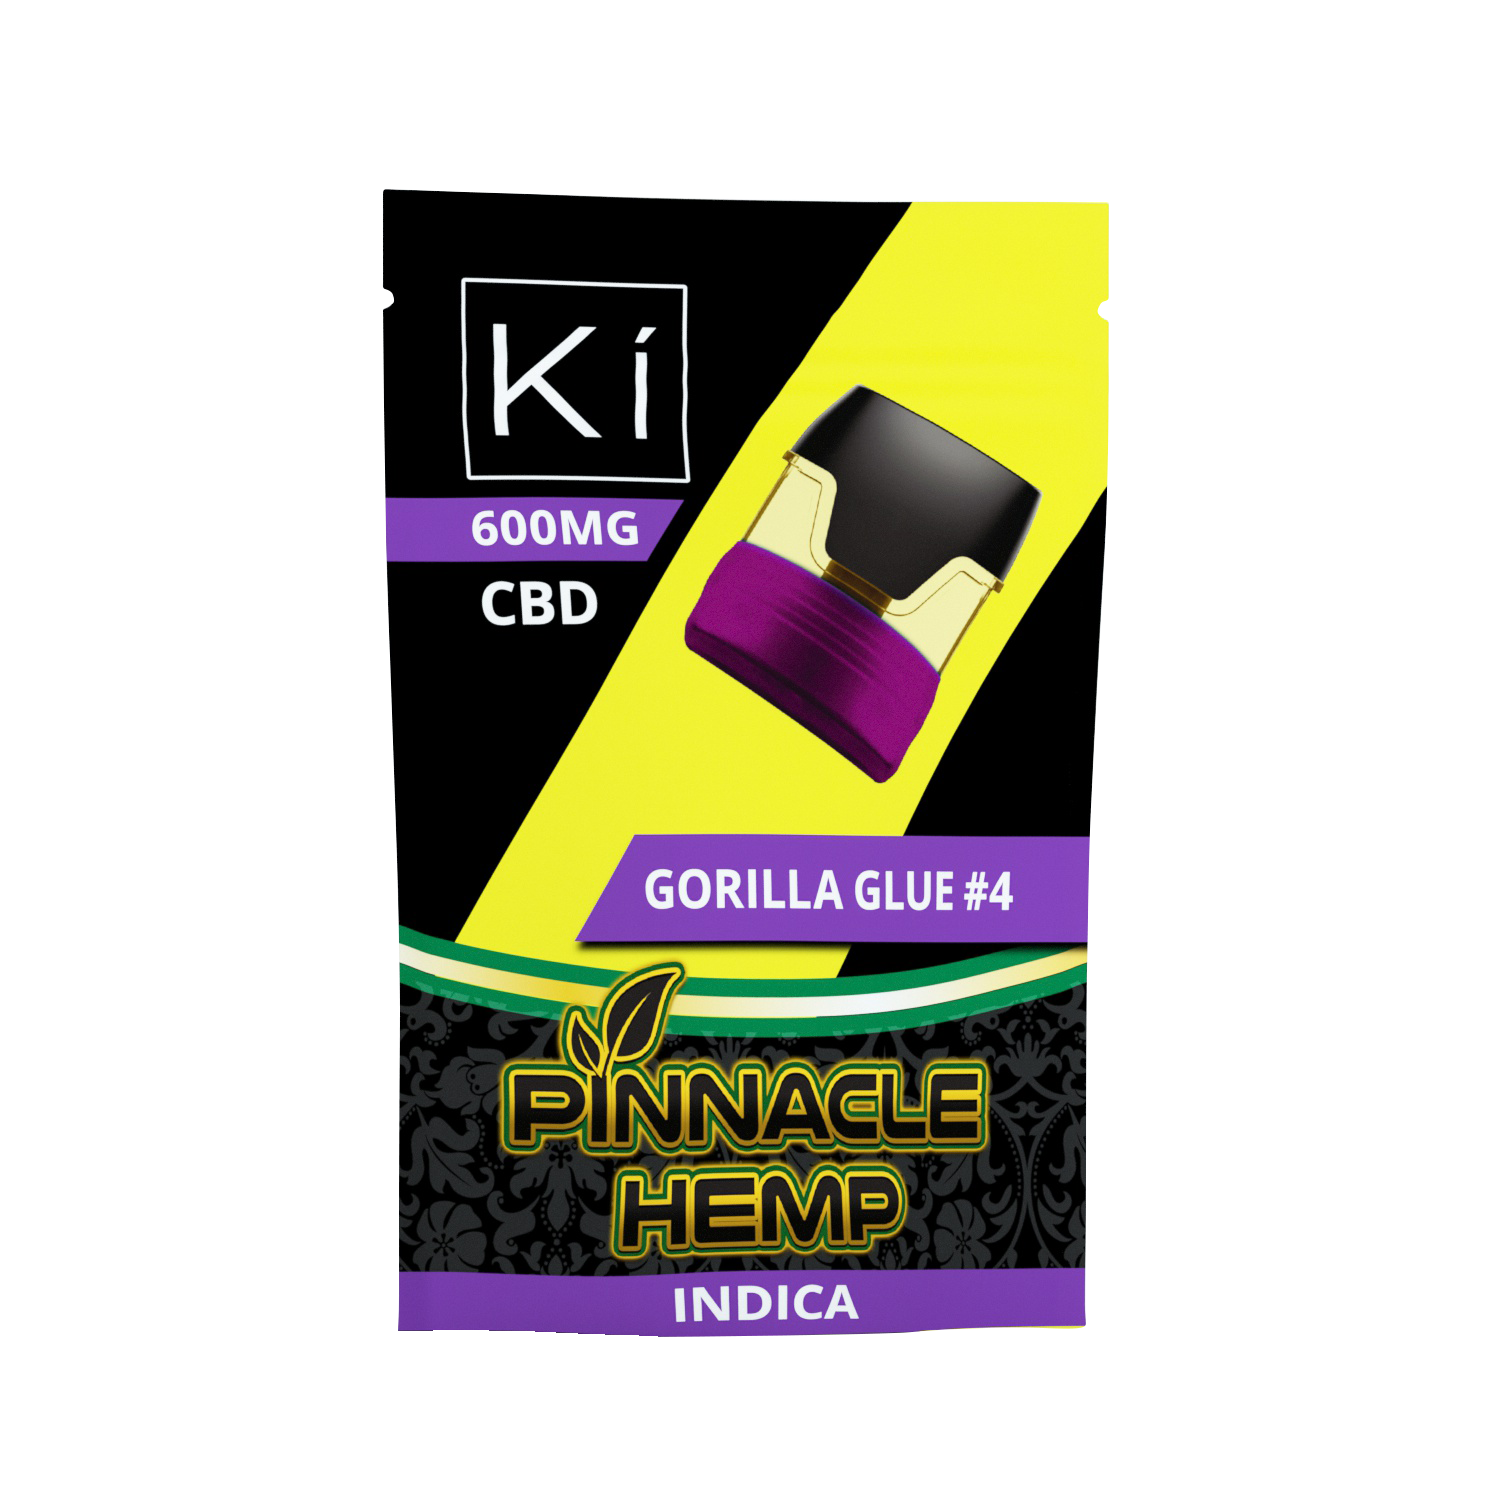 Pinnacle Ki Pod Replacement Gorilla Glue #4 600mg